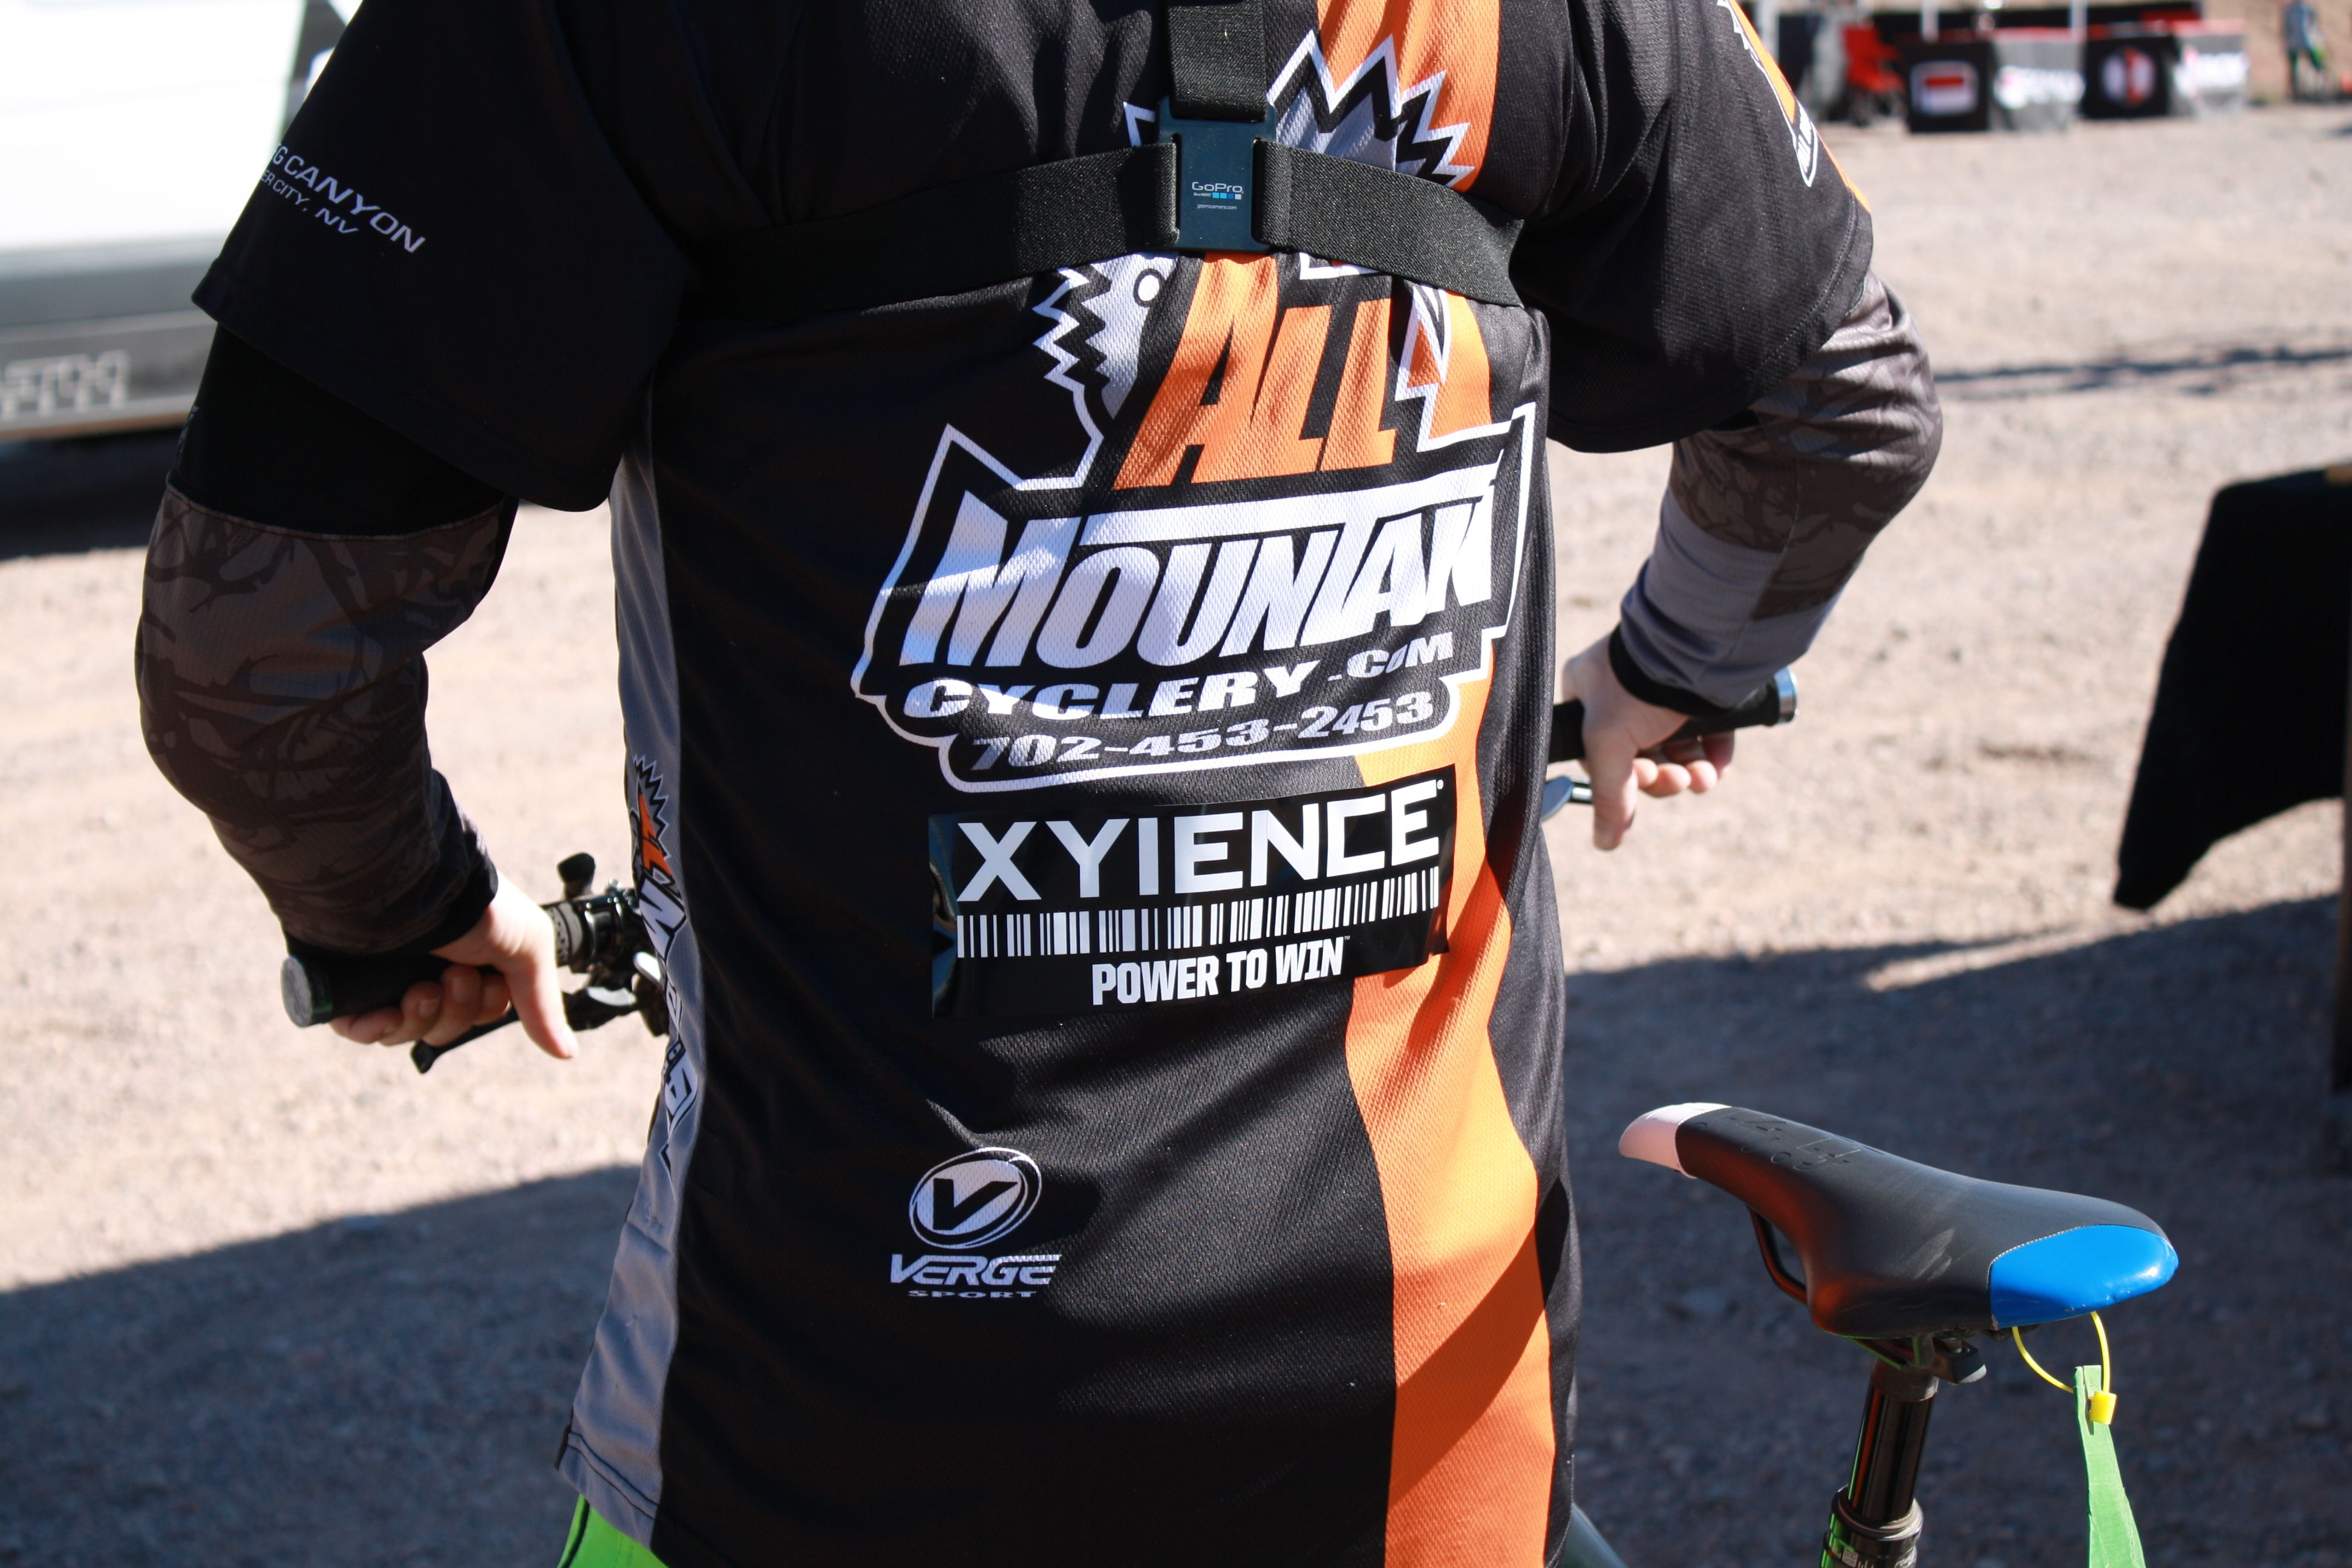 #Xyience at the #NV Downhill Championships!